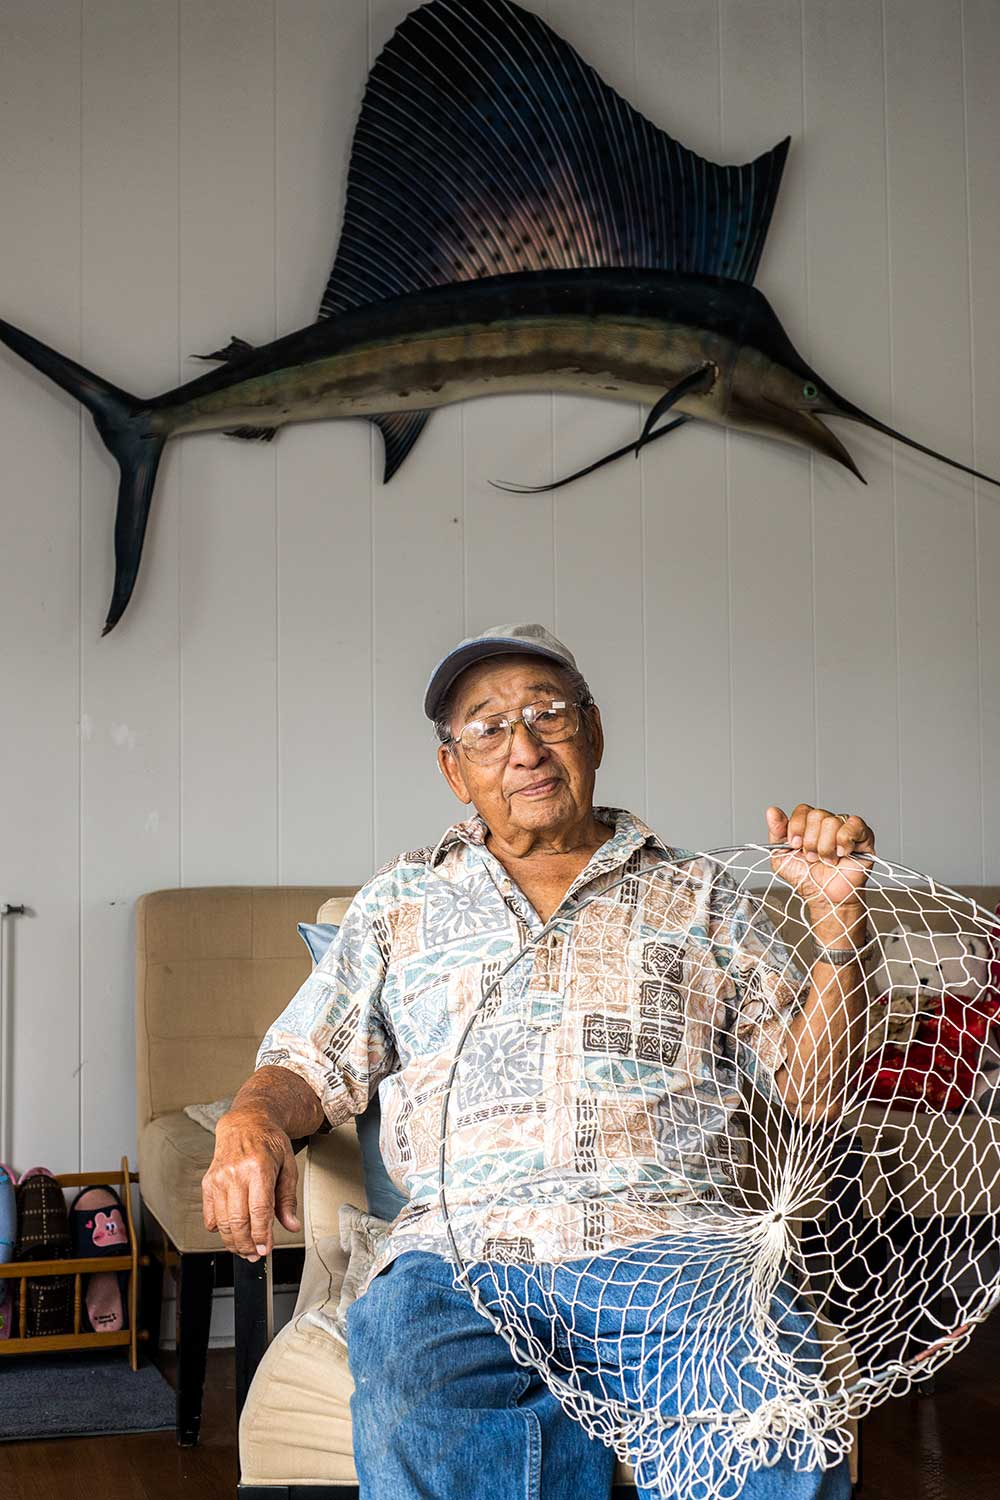 John Yu holding his handmade fishing net with swordfish hanging on wall above him